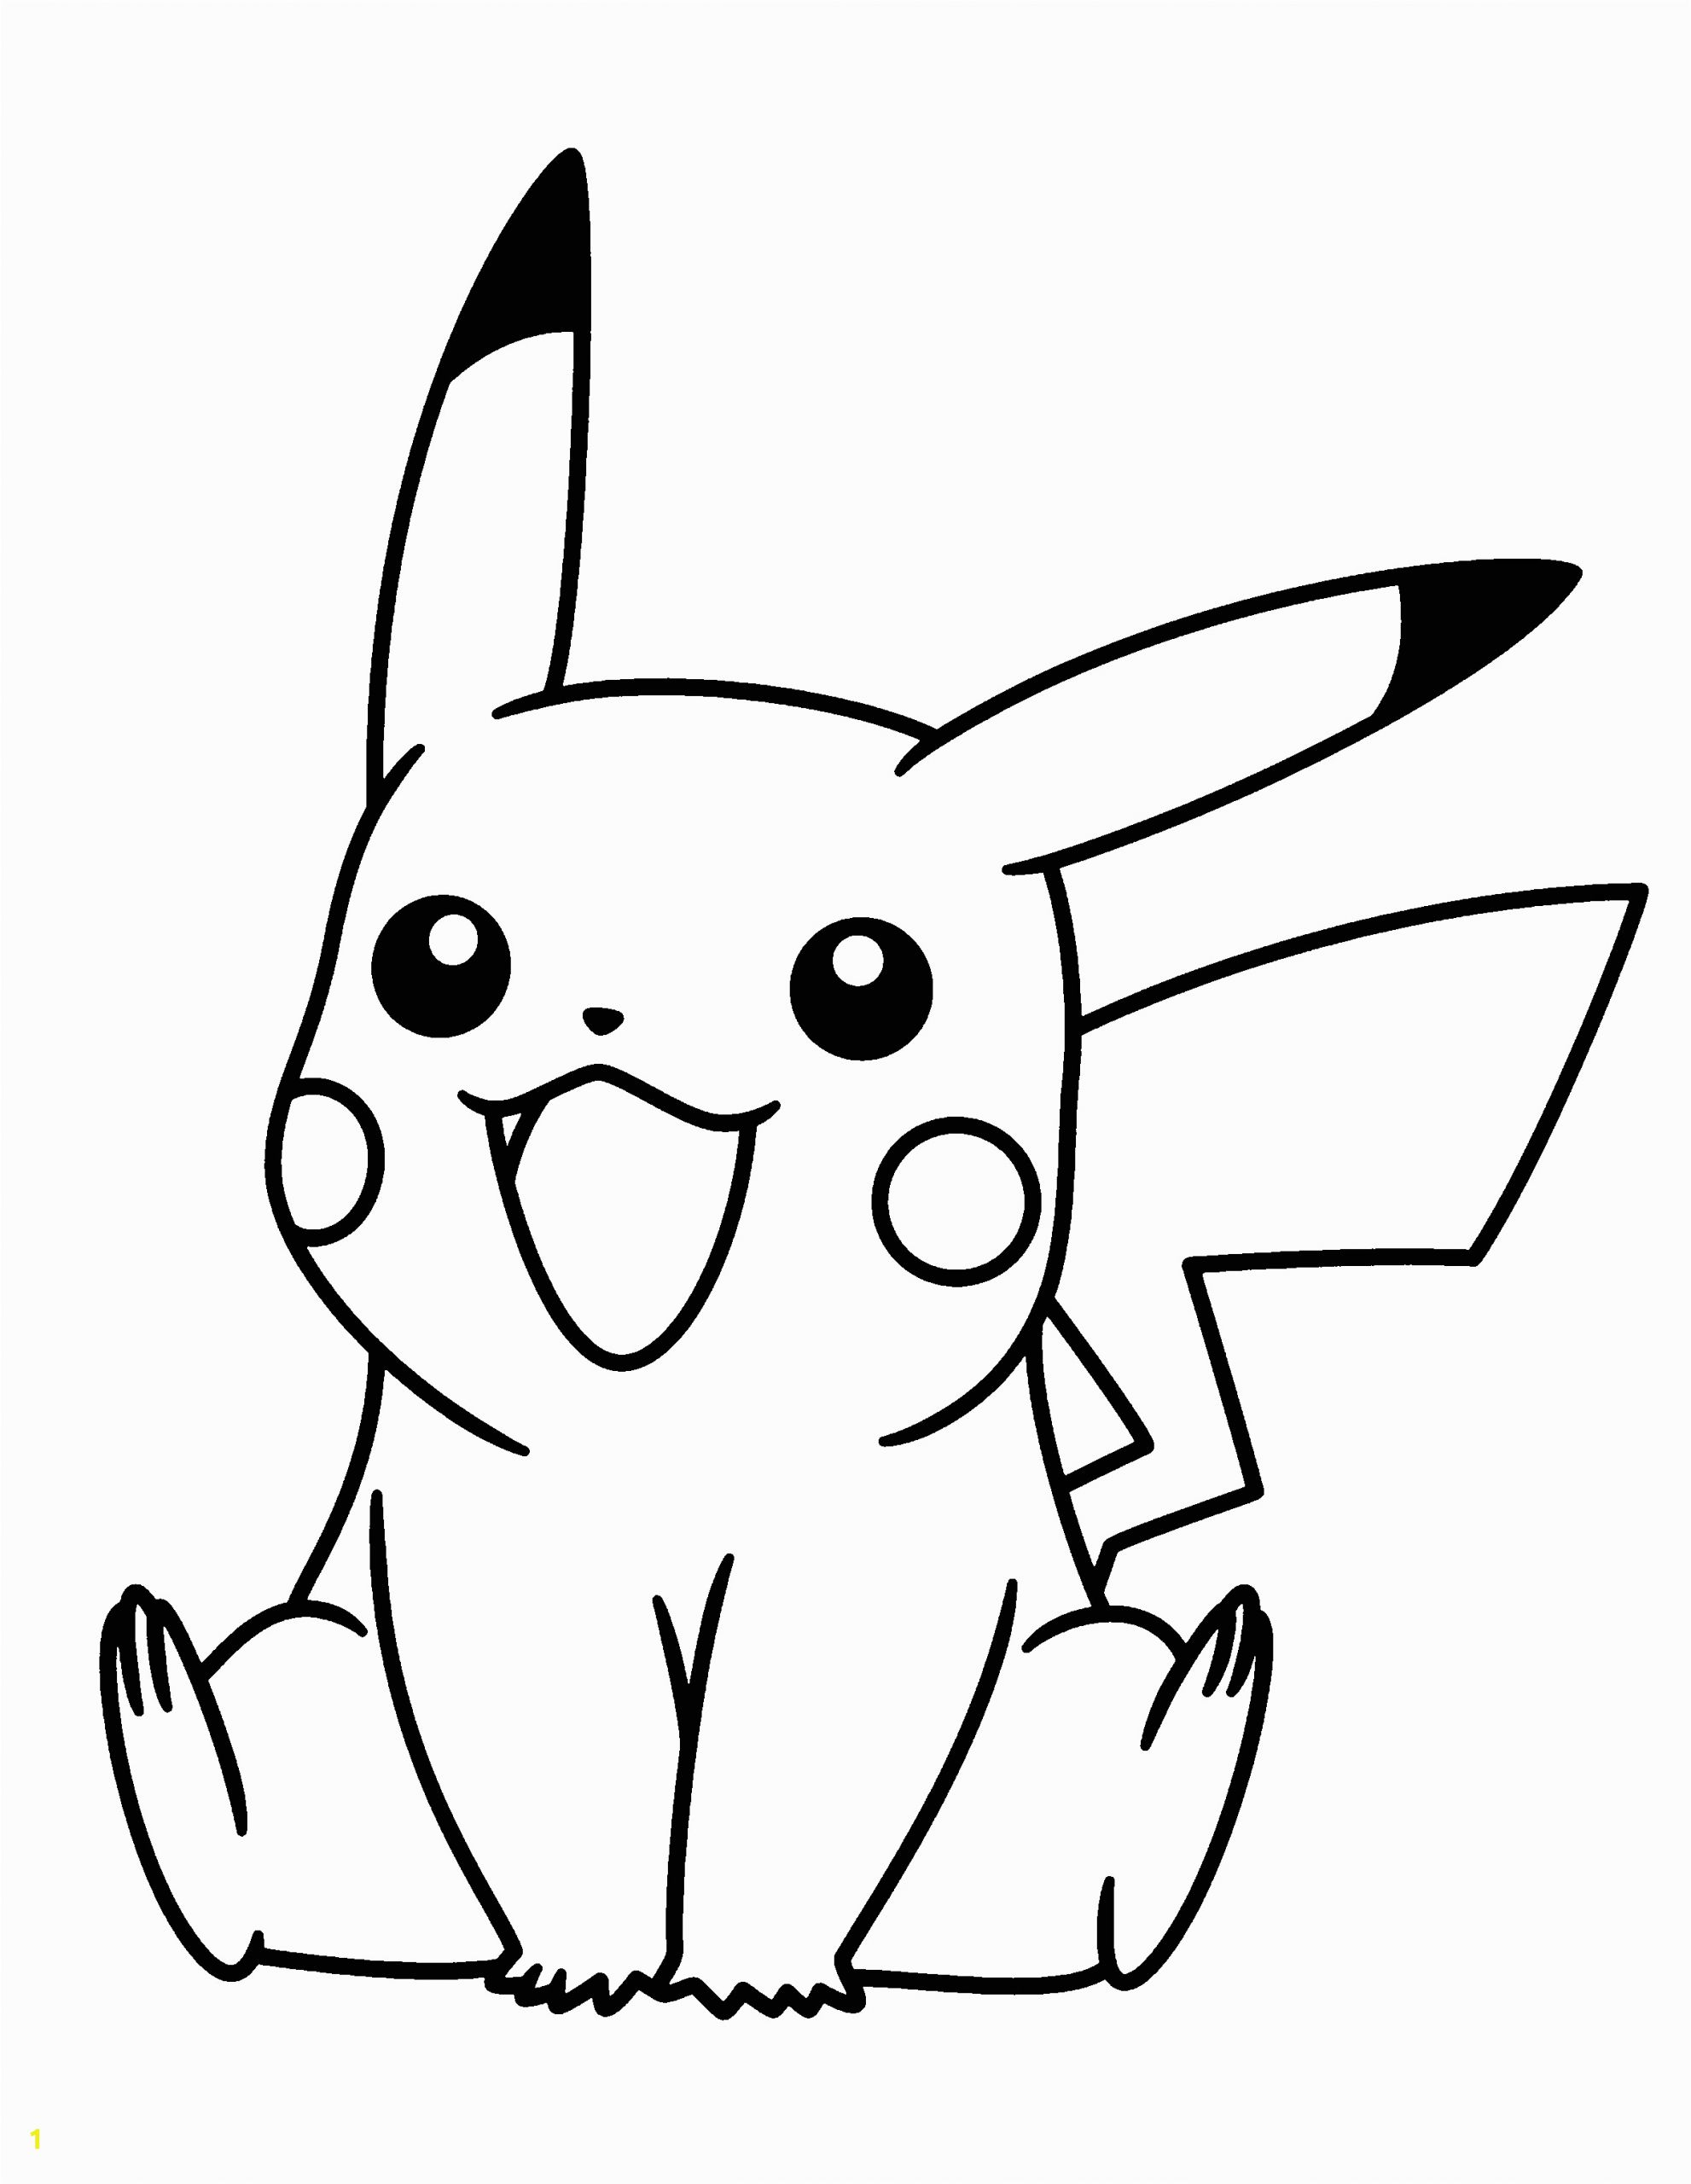 cute adorable pikachu coloring pages 10 free pikachu coloring pages for kids pikachu coloring adorable pages cute